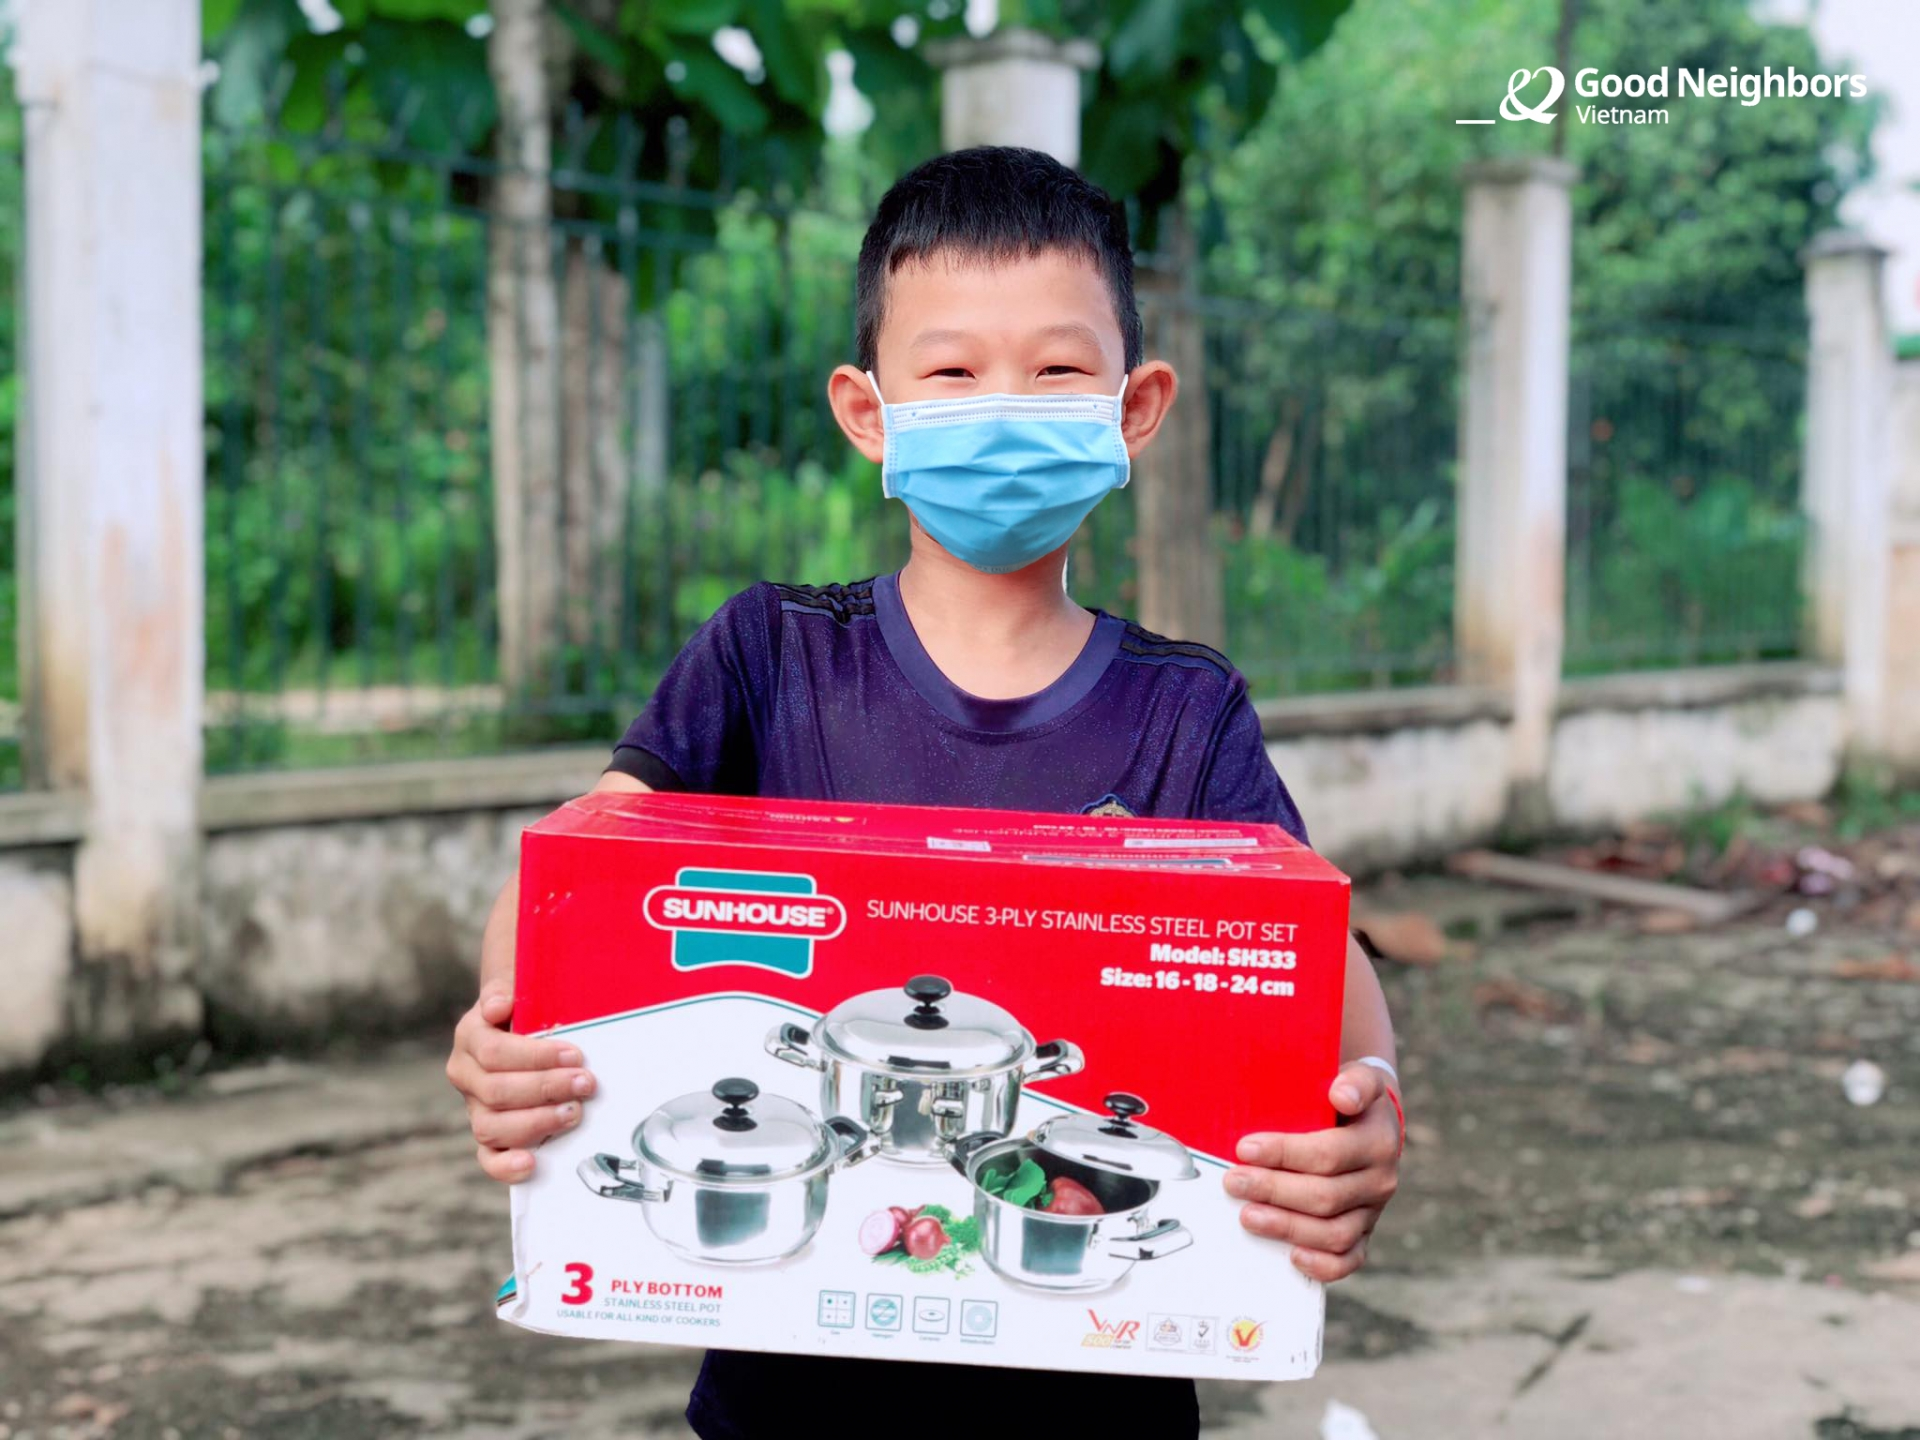 GNI Improves Rural Drinking Water Supply in for District in Thanh Hoa